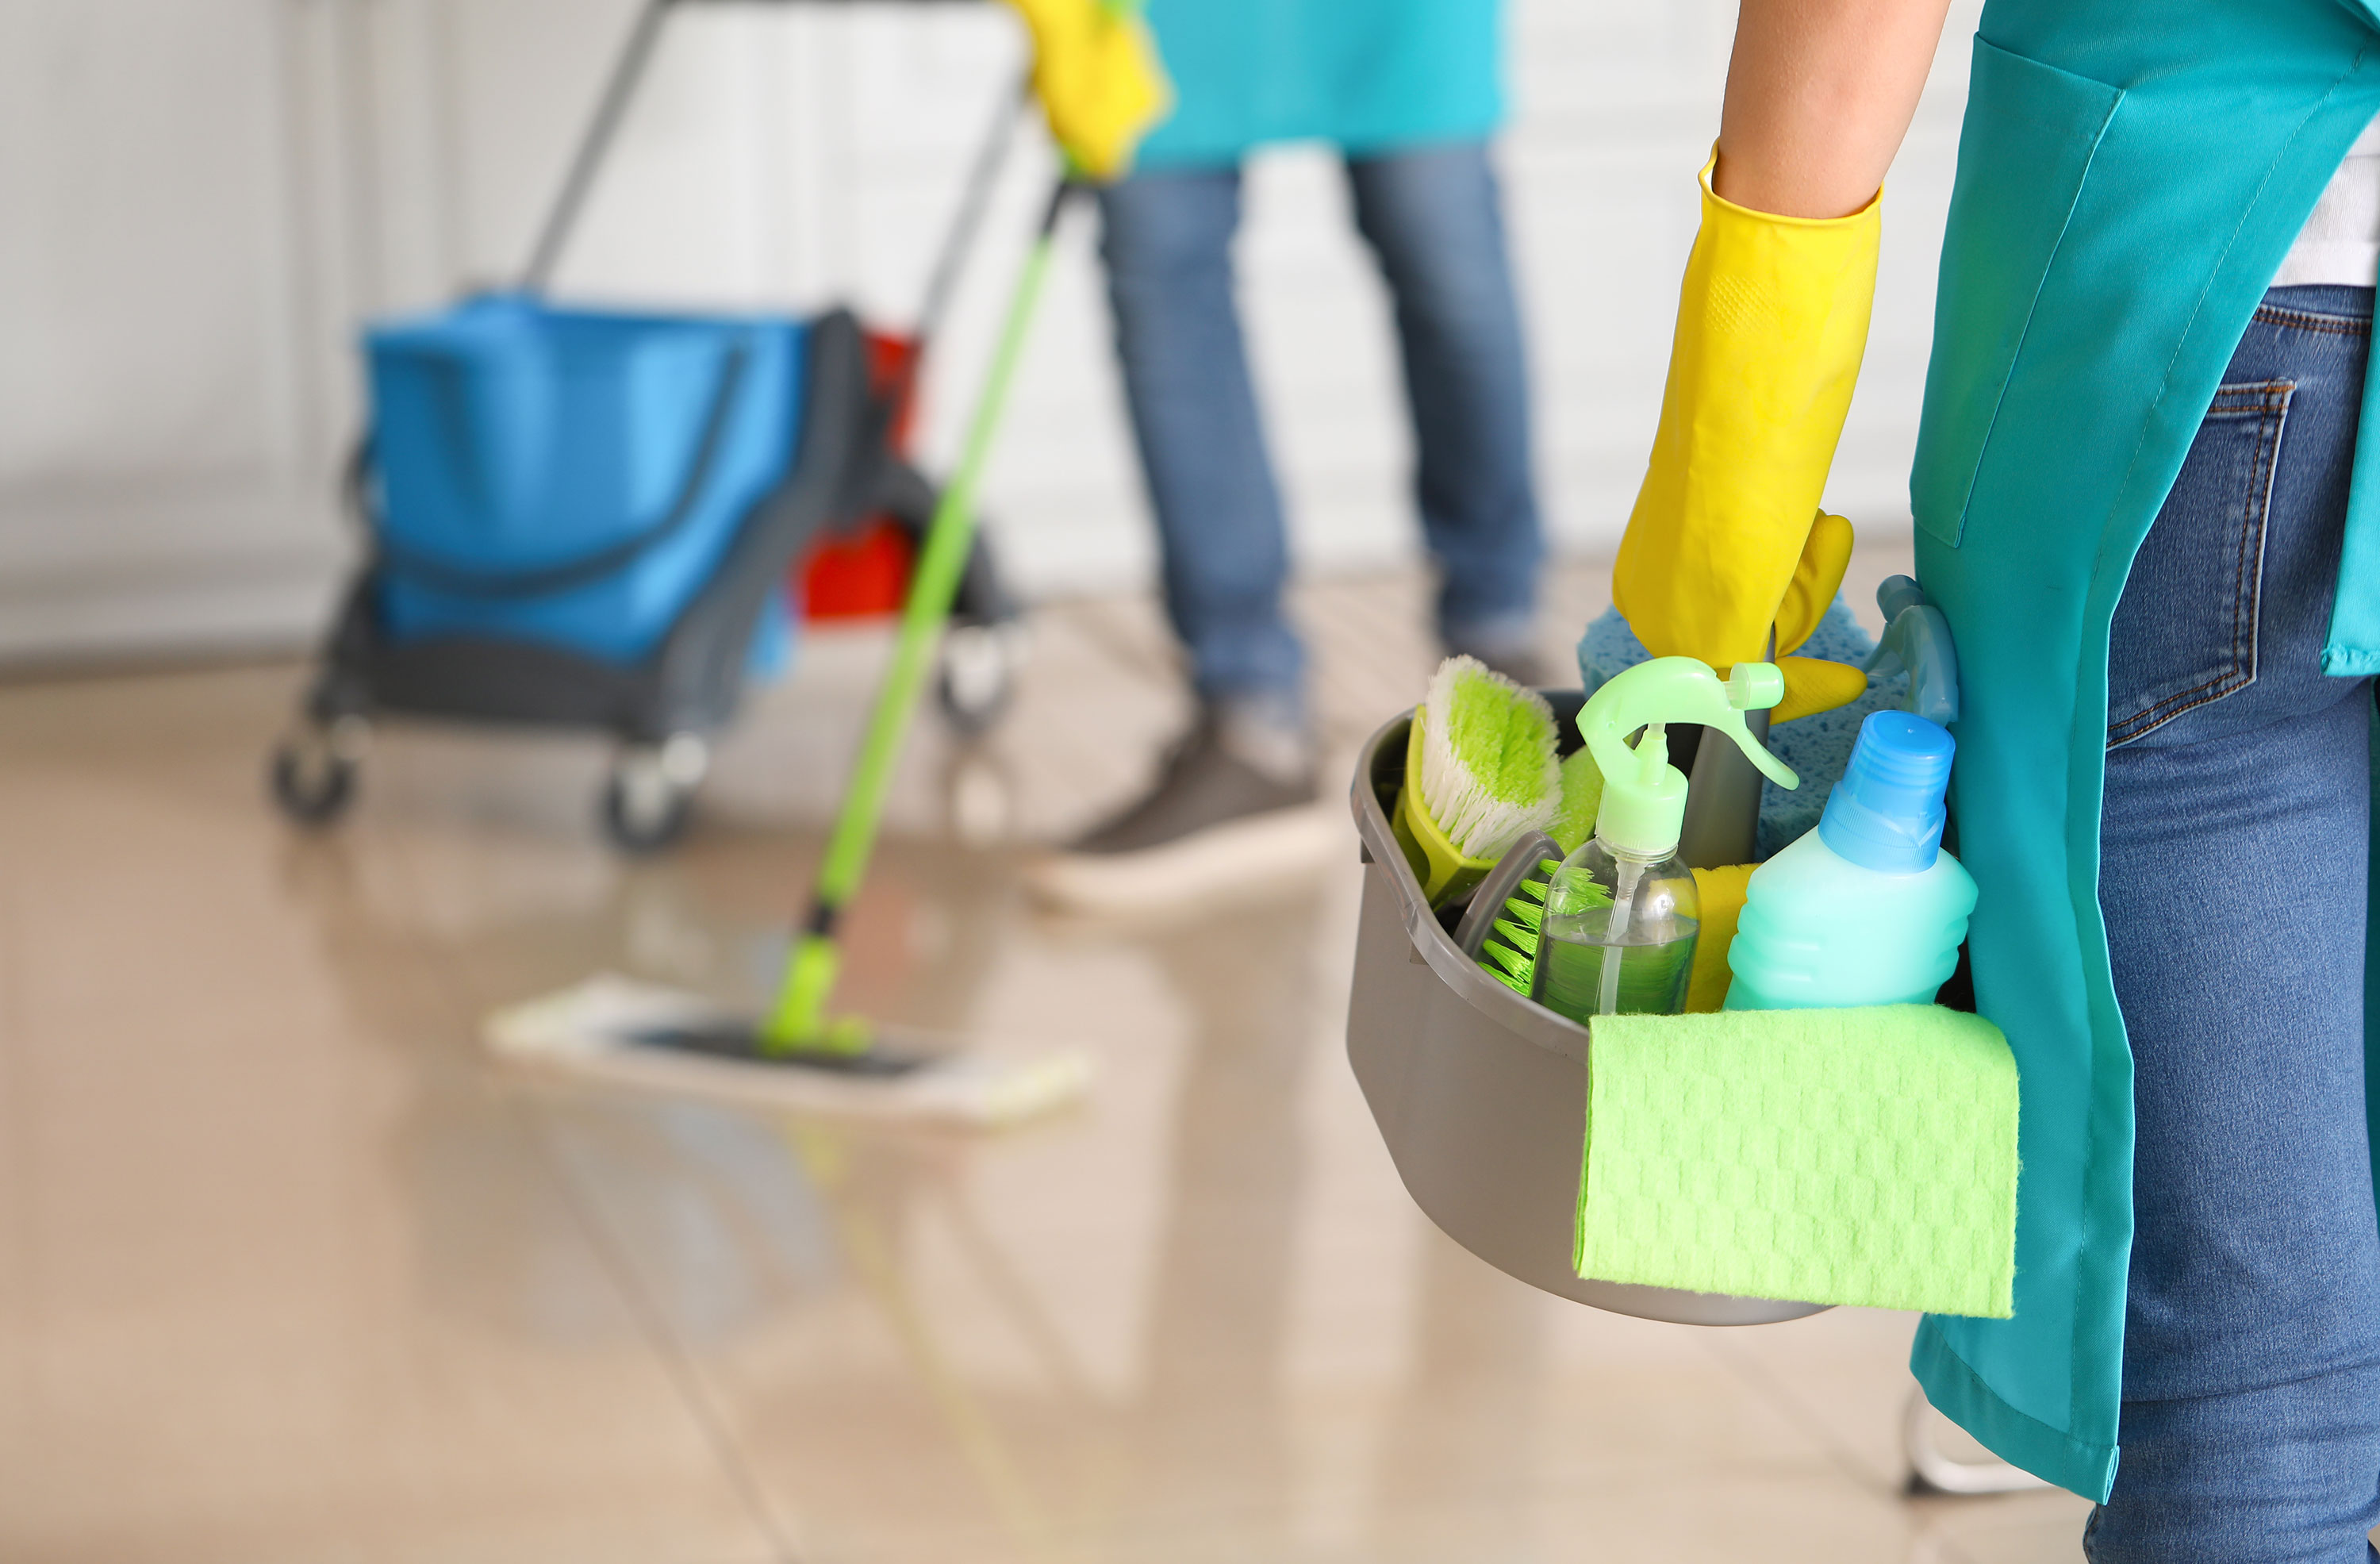 The coronavirus pandemic has been catastrophic for house cleaners and nannies